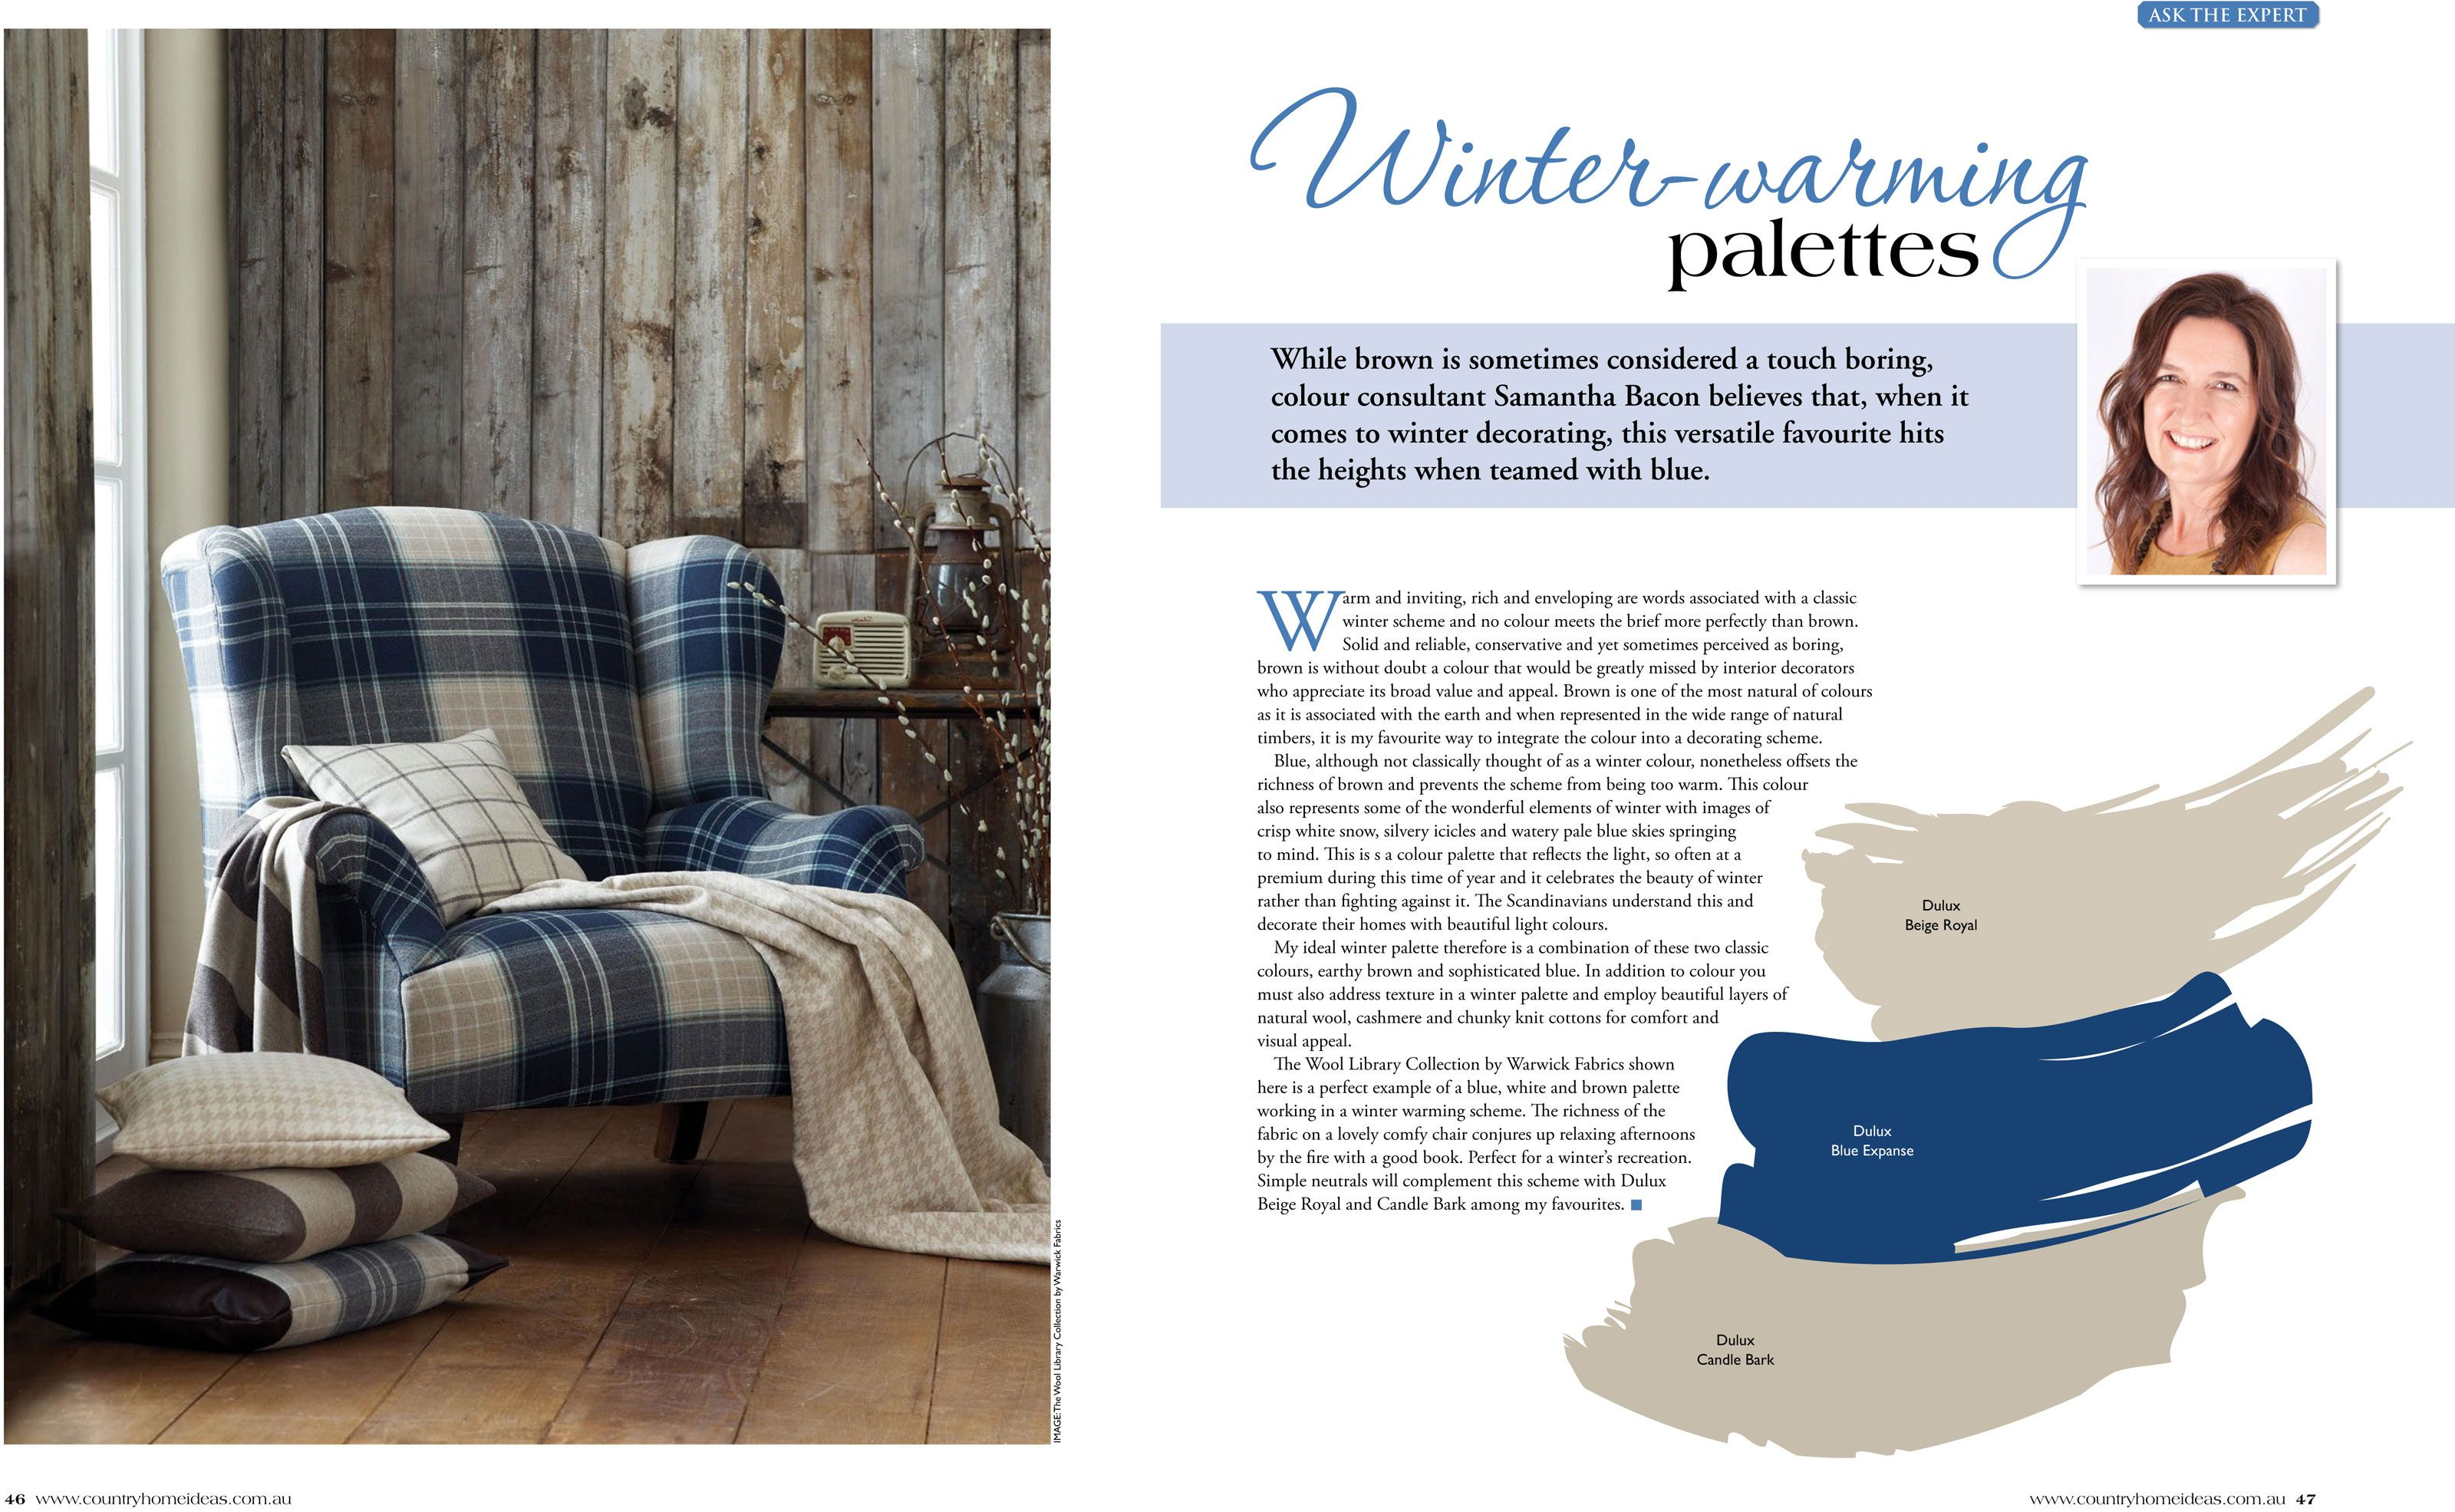 Country Home Ideas - Winter Warming Palettes | Ideas magazine, Cosy ...